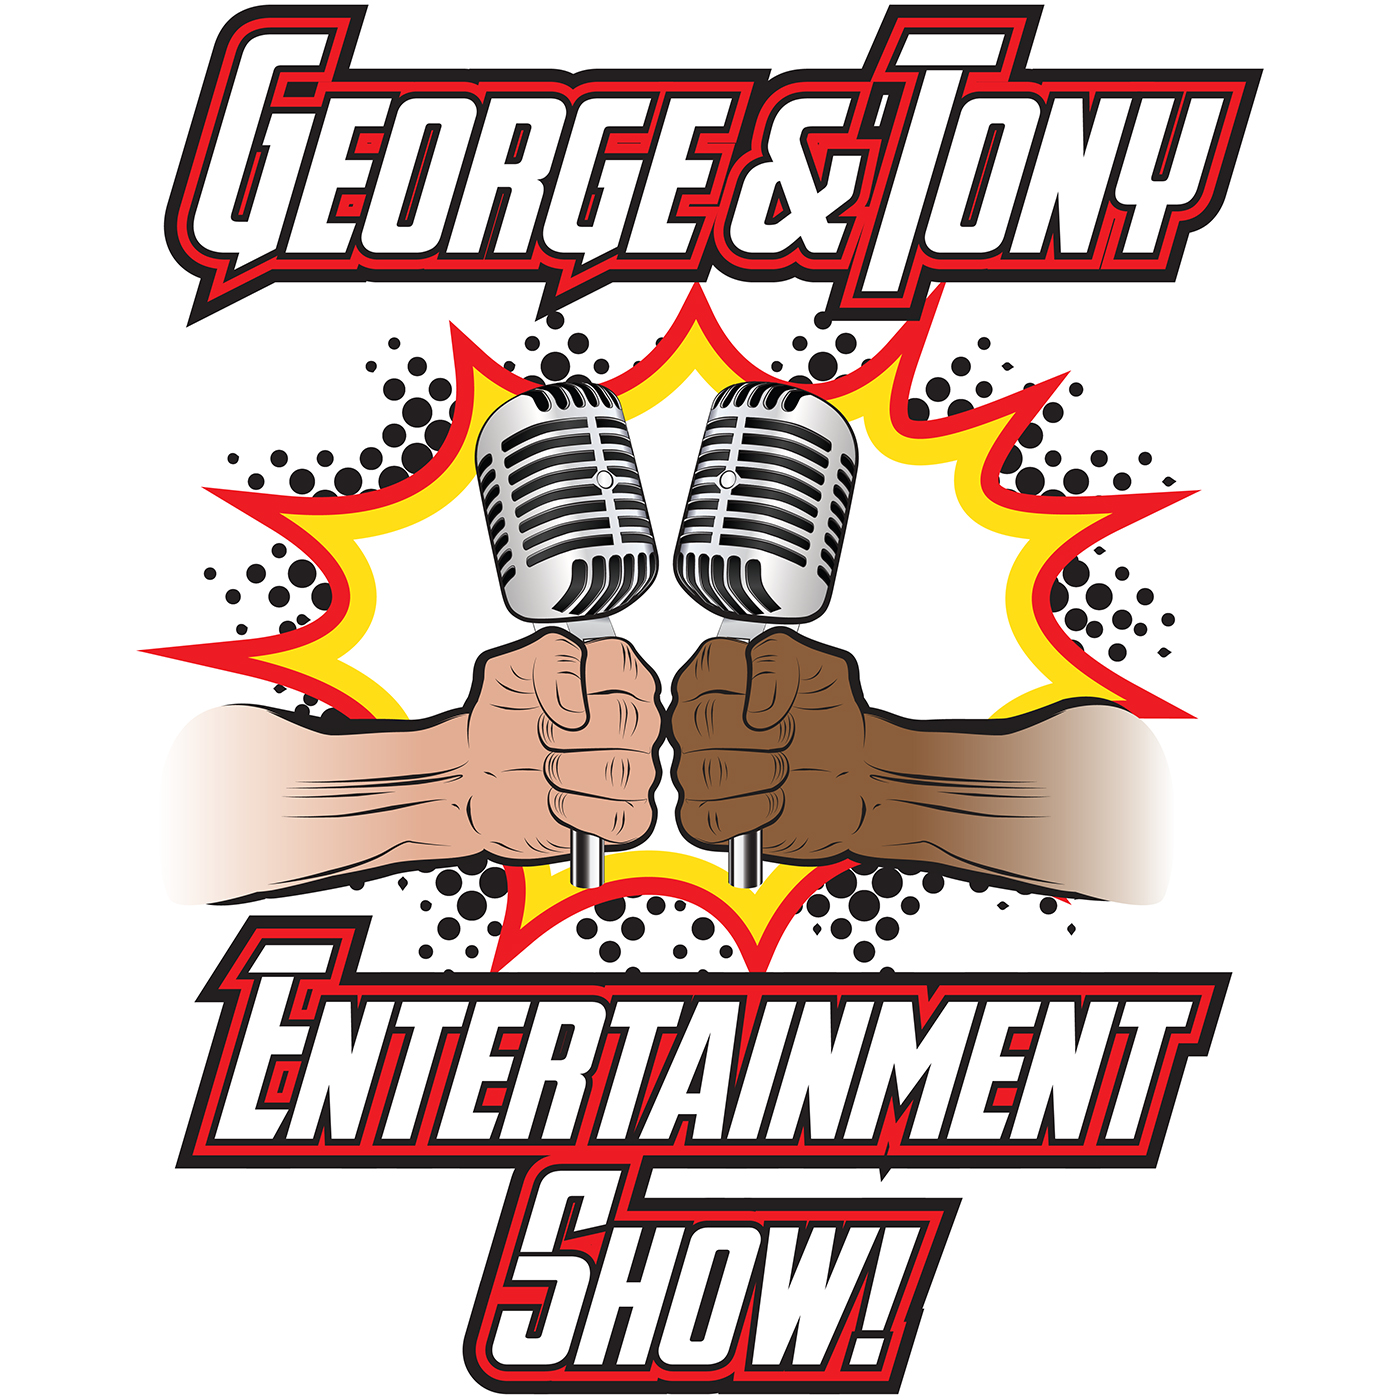 George and Tony Entertainment Show #131